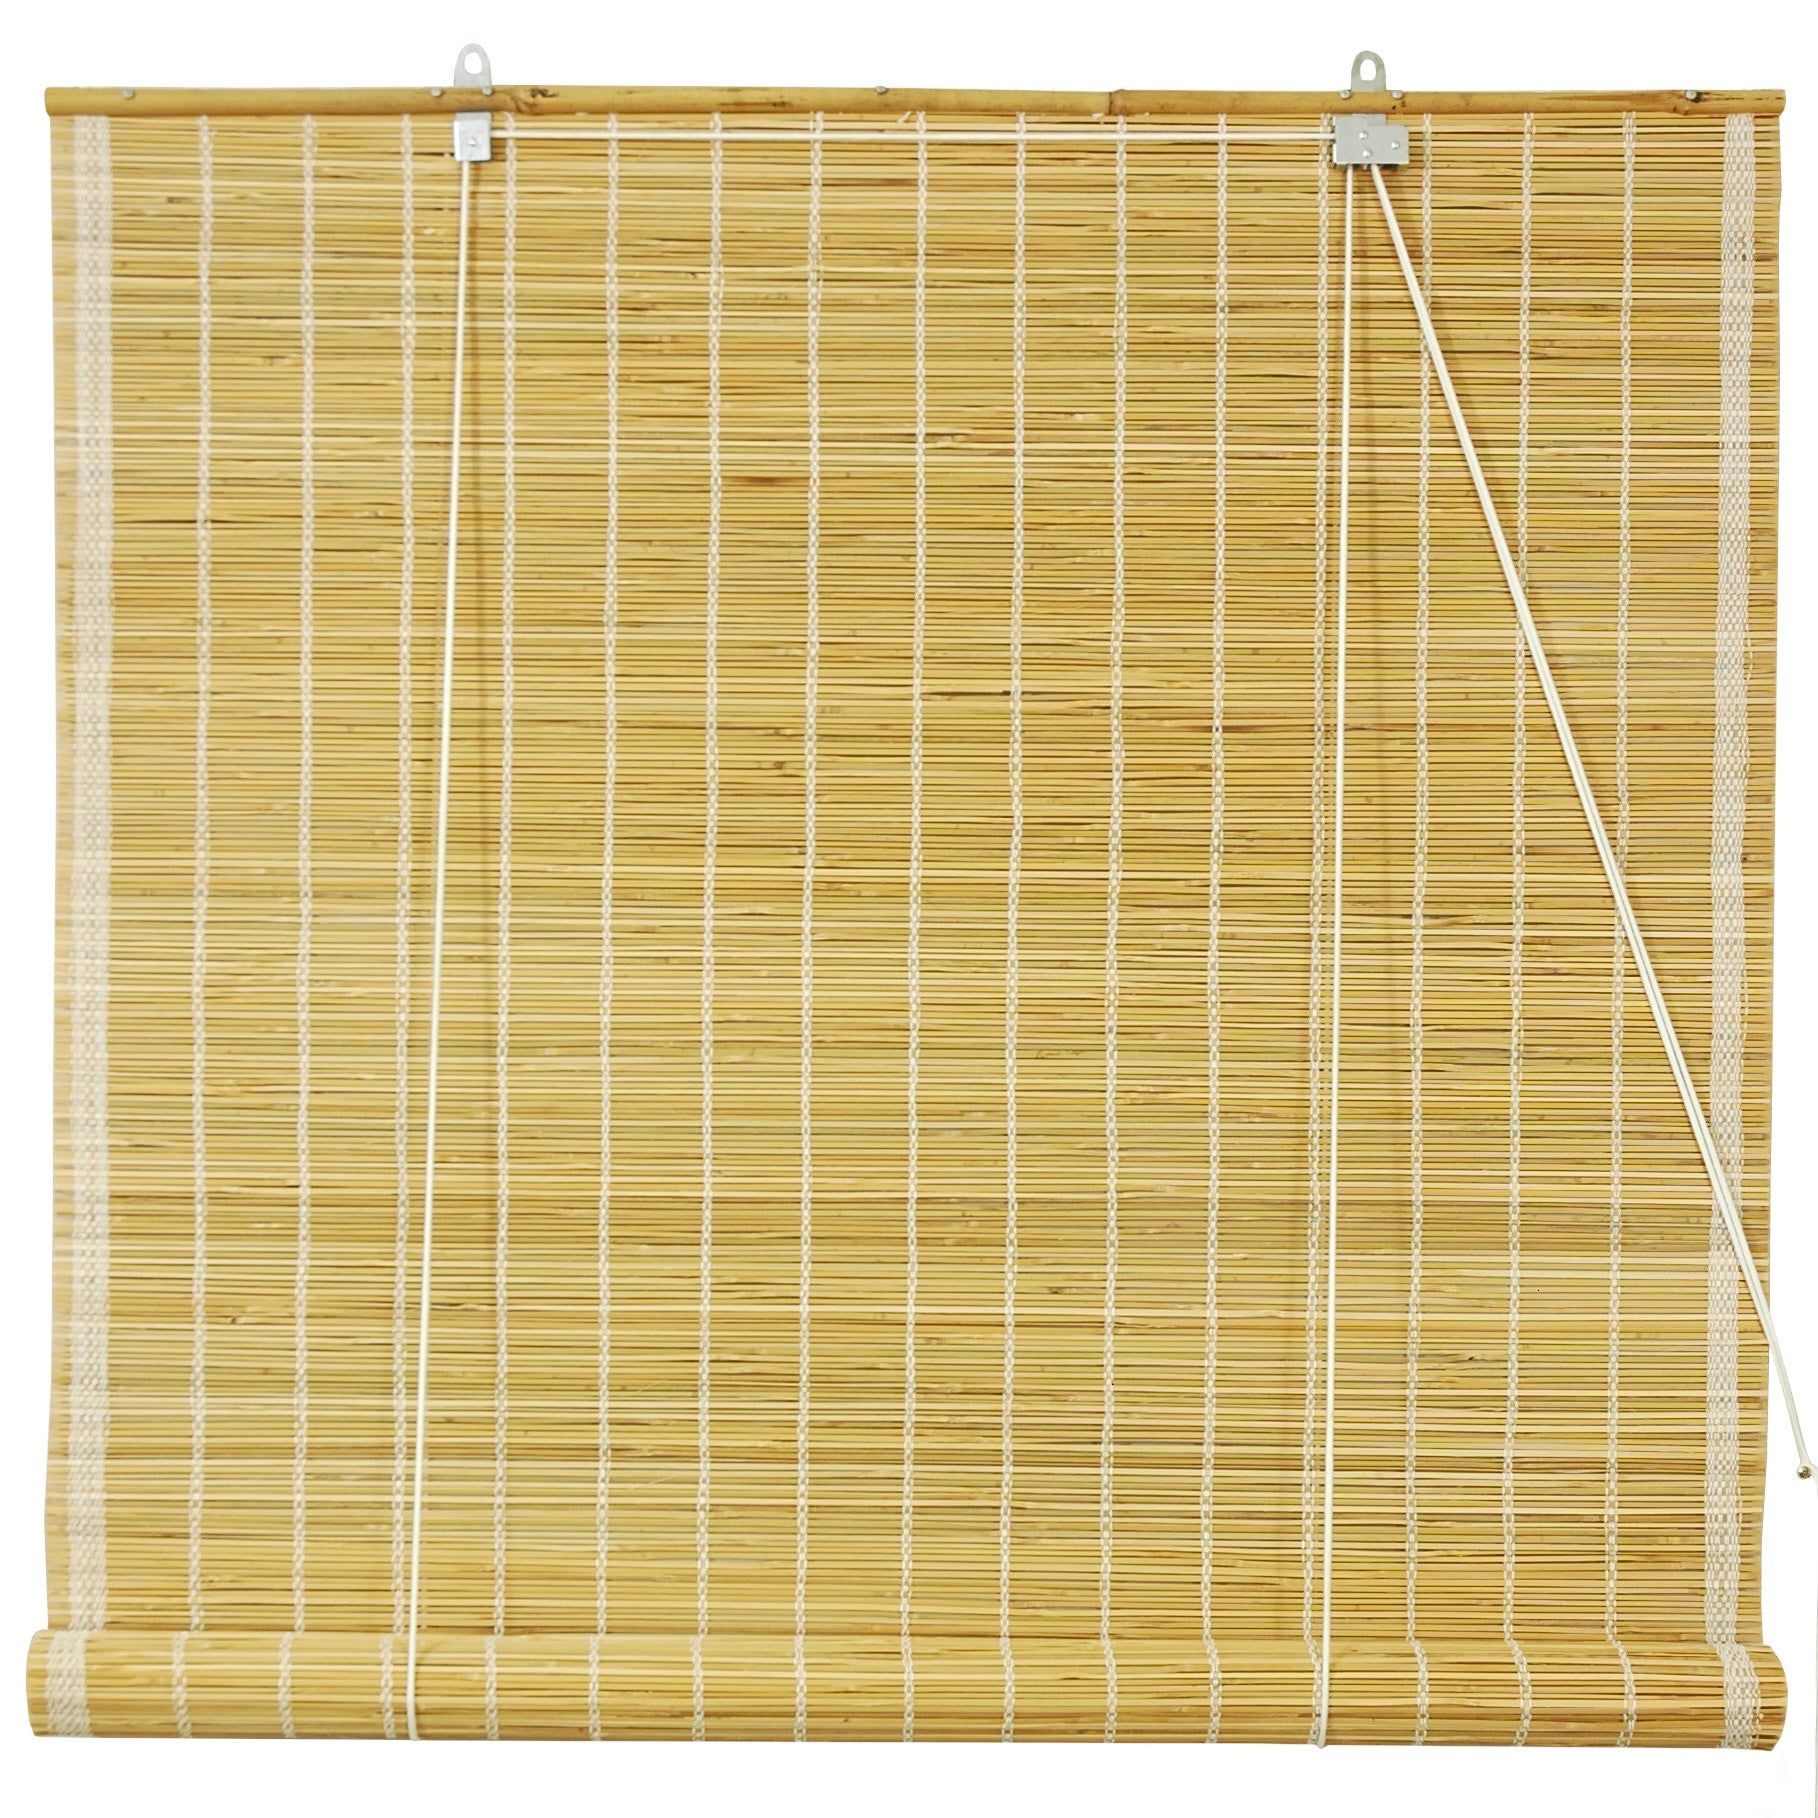 Handmade 48-inch Natural Matchstick Roll Up Blinds (China...